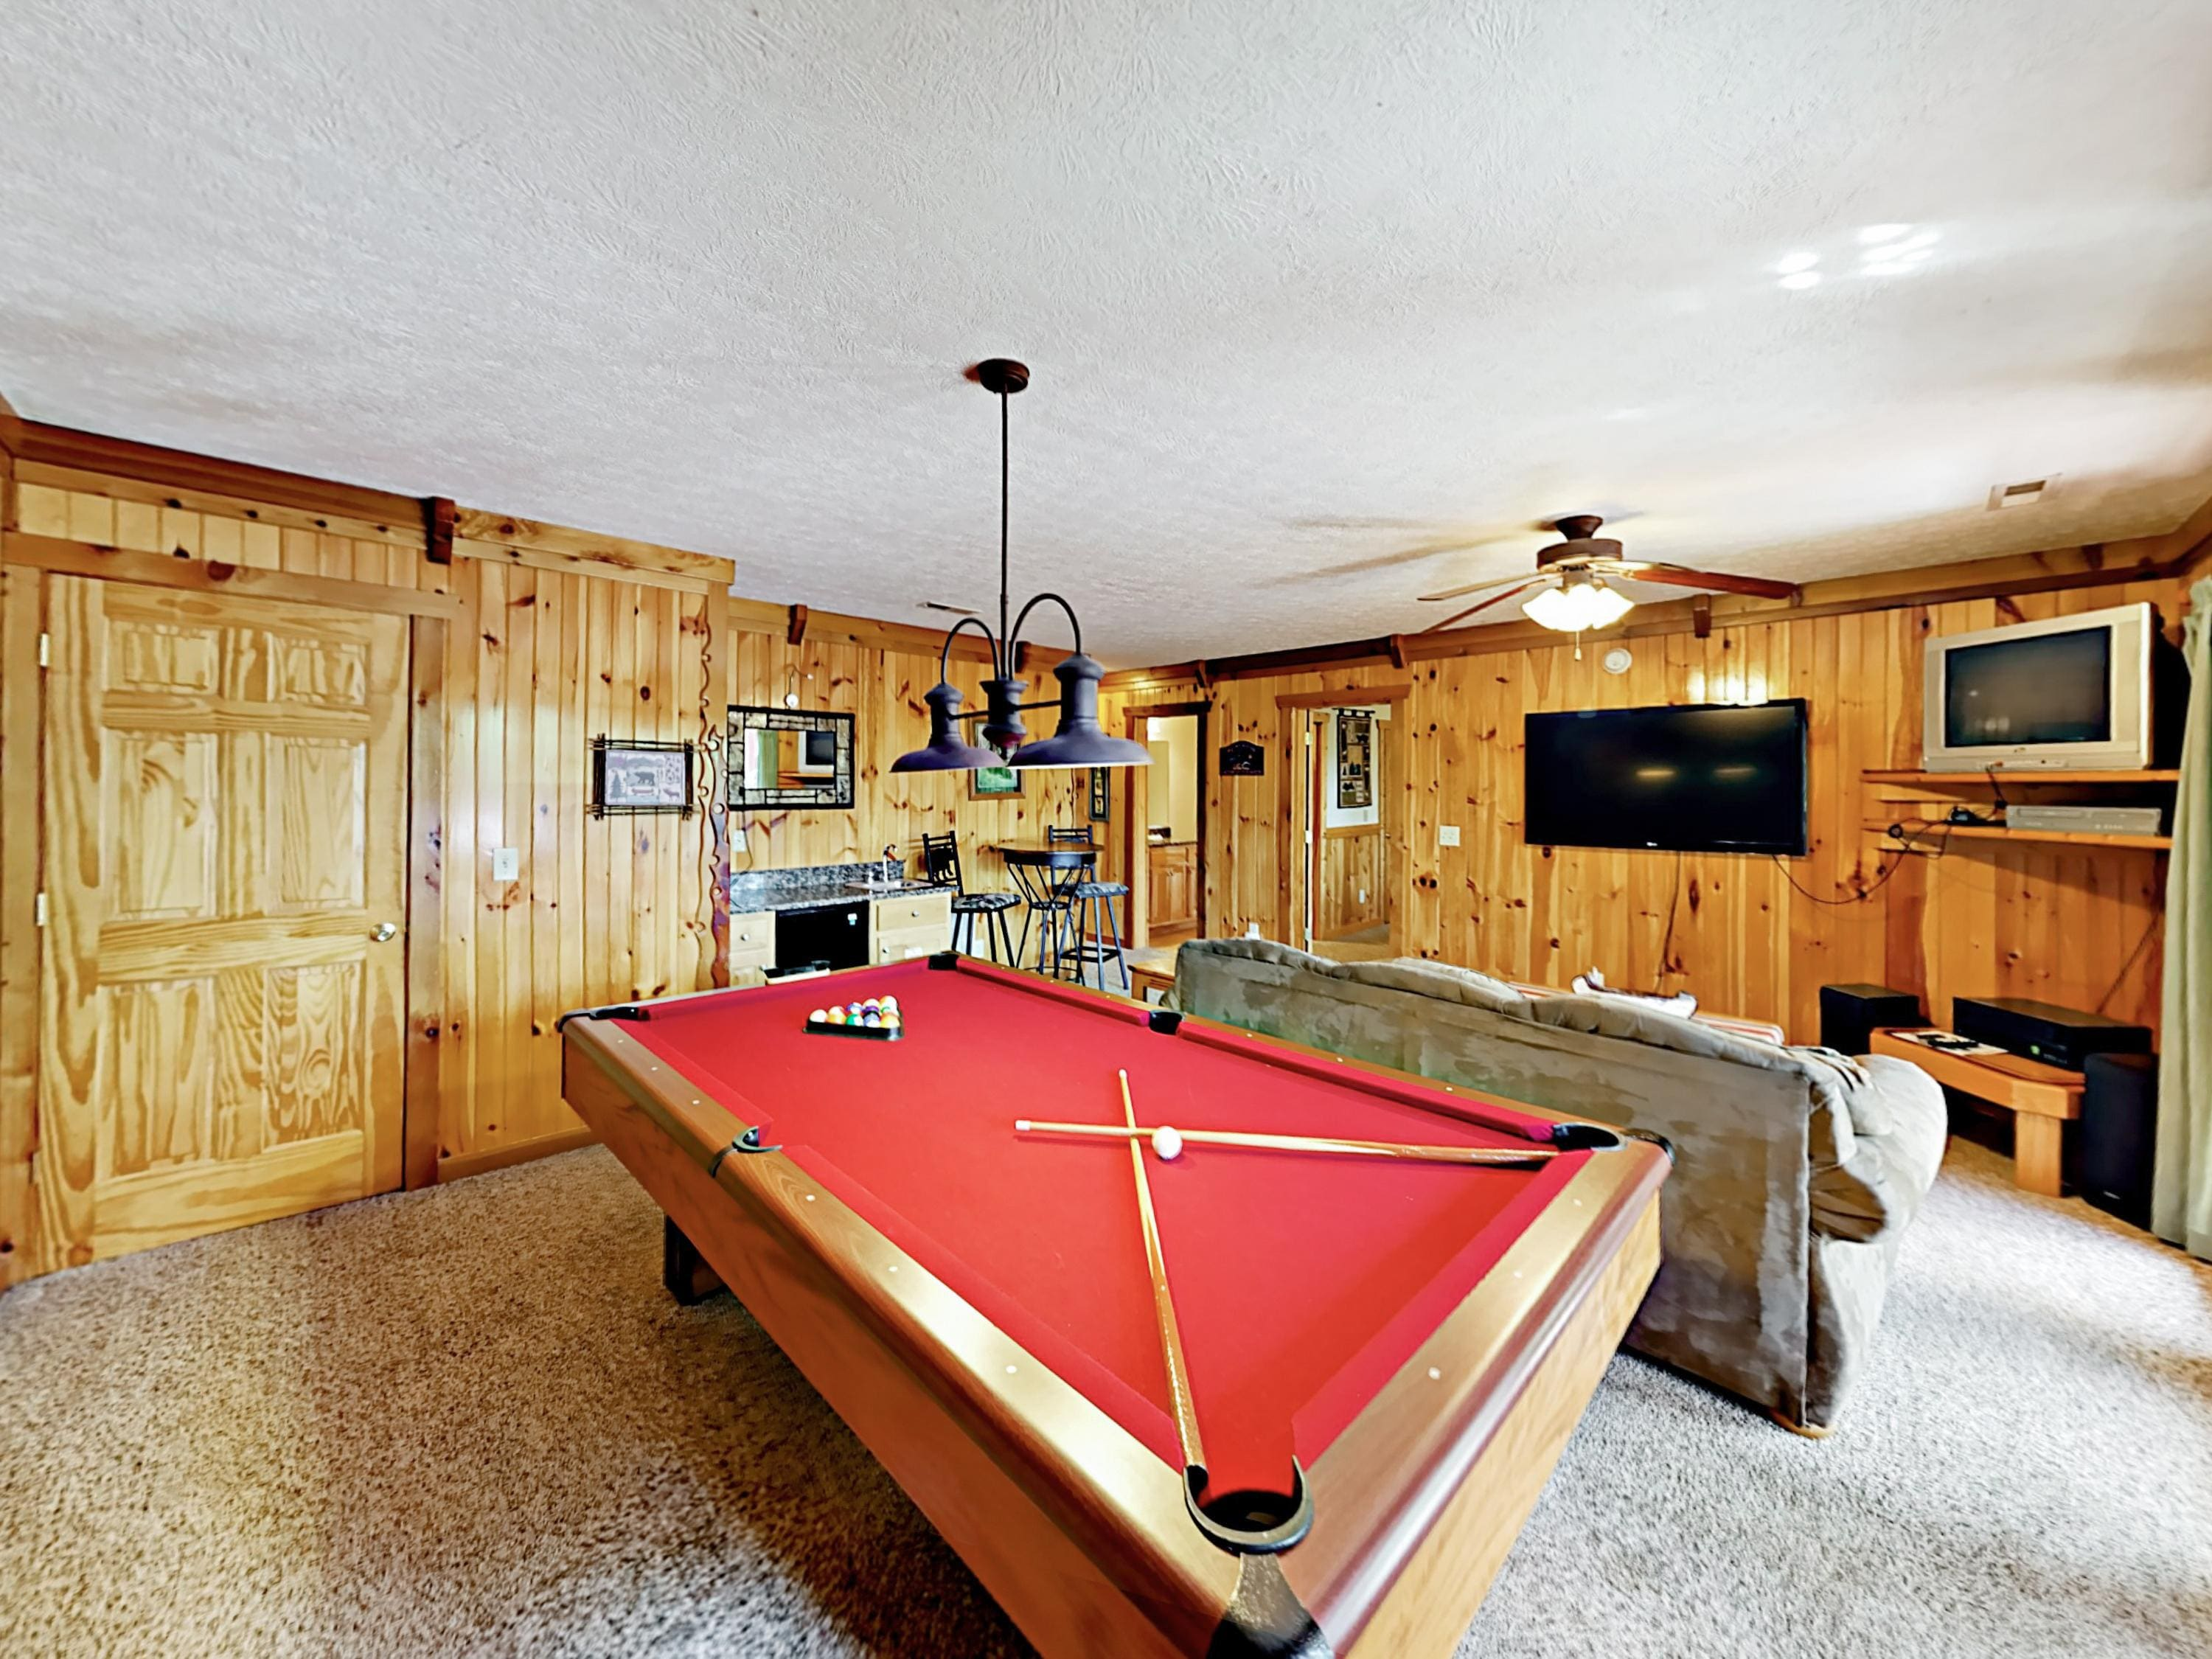 Enjoy the pool table in the 2nd living area located downstairs.